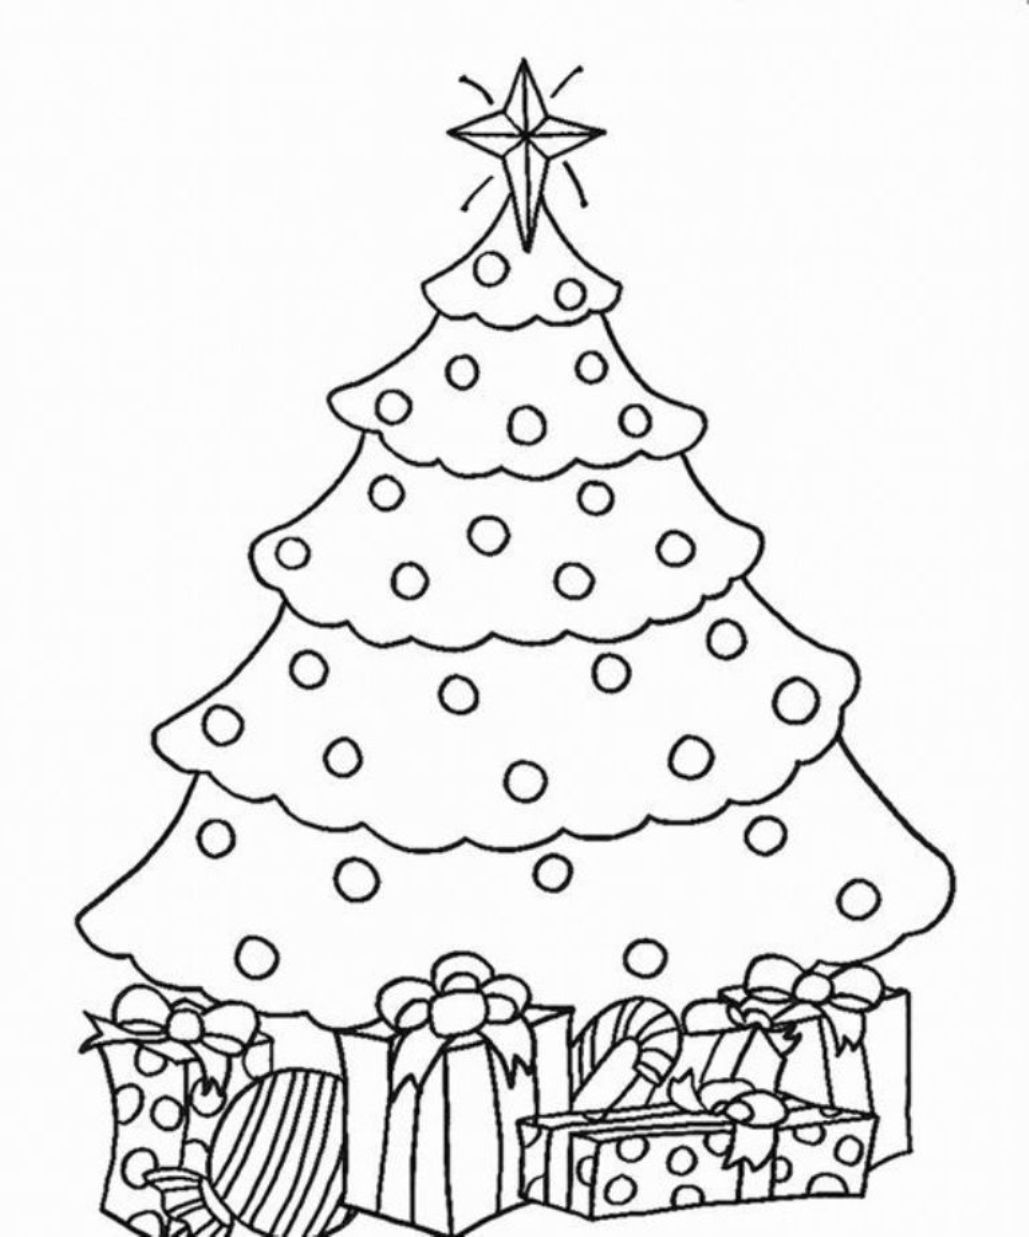 coloring pages of christmas trees free easy to print christmas tree coloring pages tulamama coloring pages trees of christmas